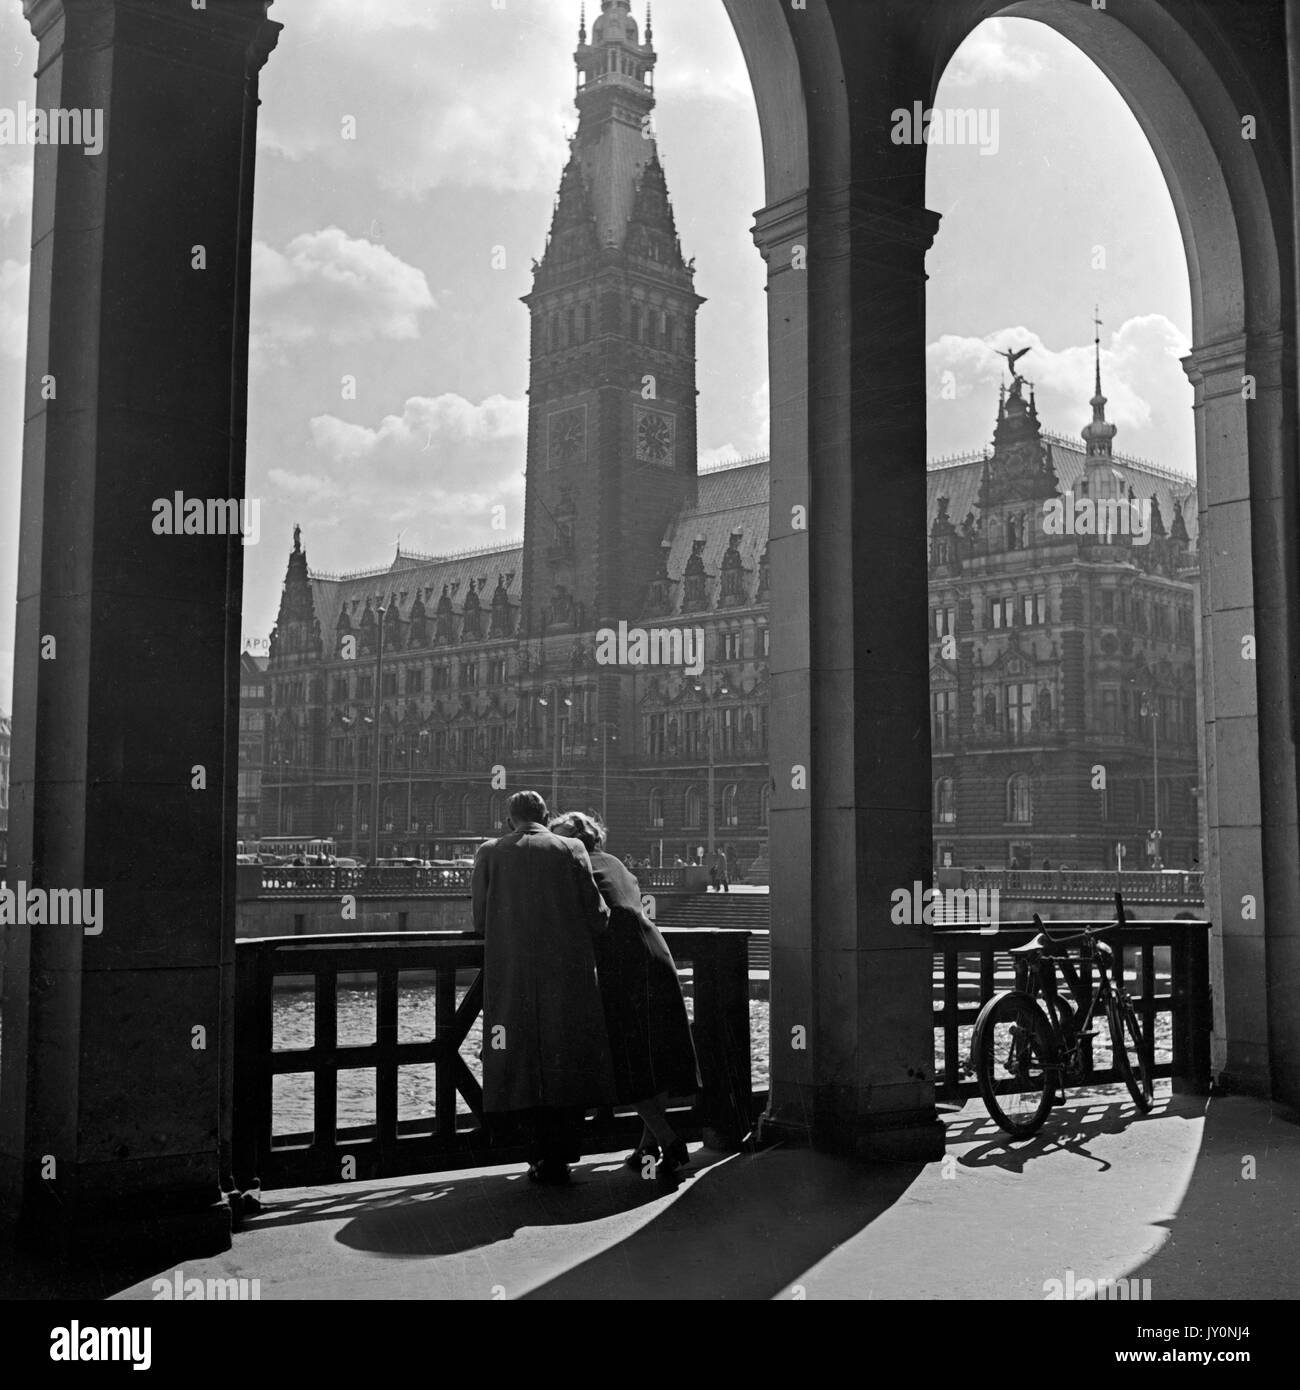 Woman and man standing under arch by water in city. - Stock Image